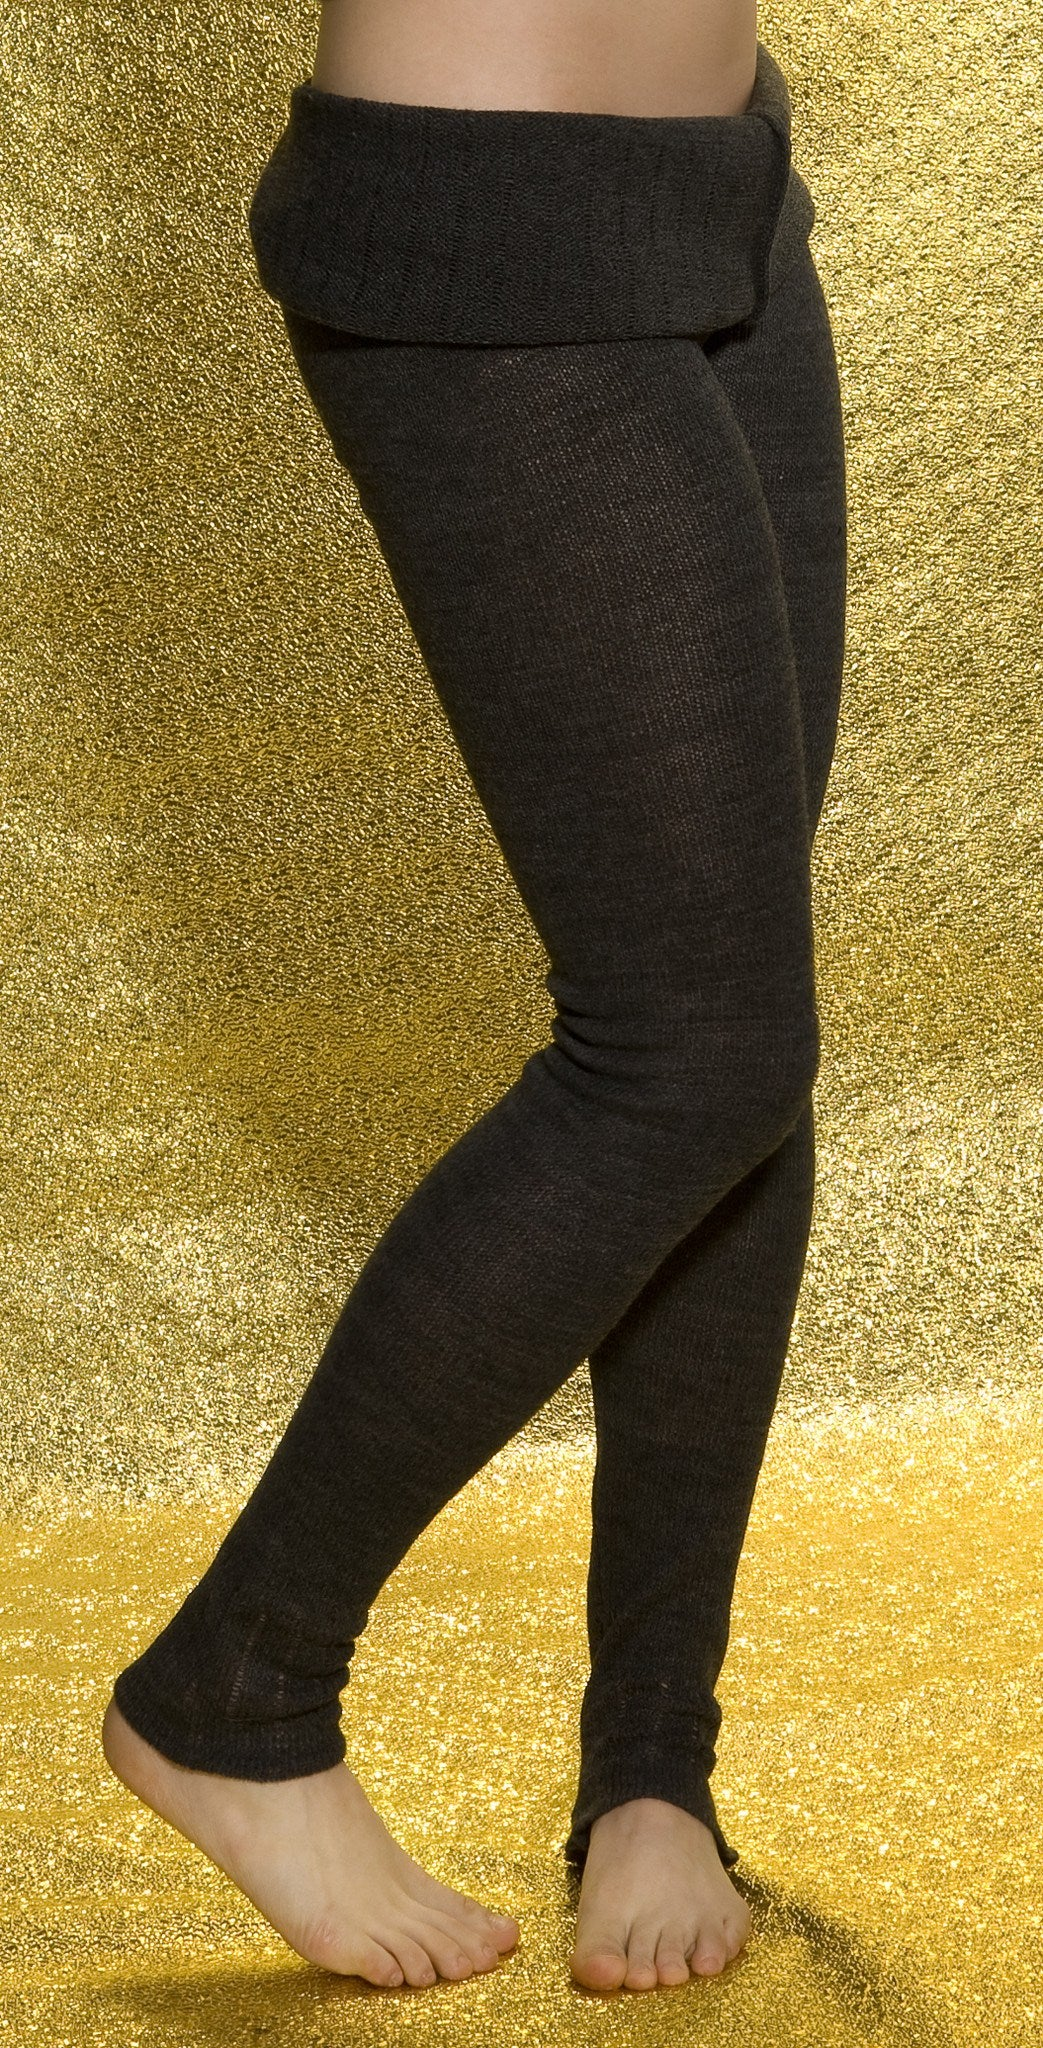 KD dance New York Soft, Luxurious Loose Knit  Roll Waist Tights with Drawstring Made In USA @KDdanceNewYork #MadeInUSA - 9